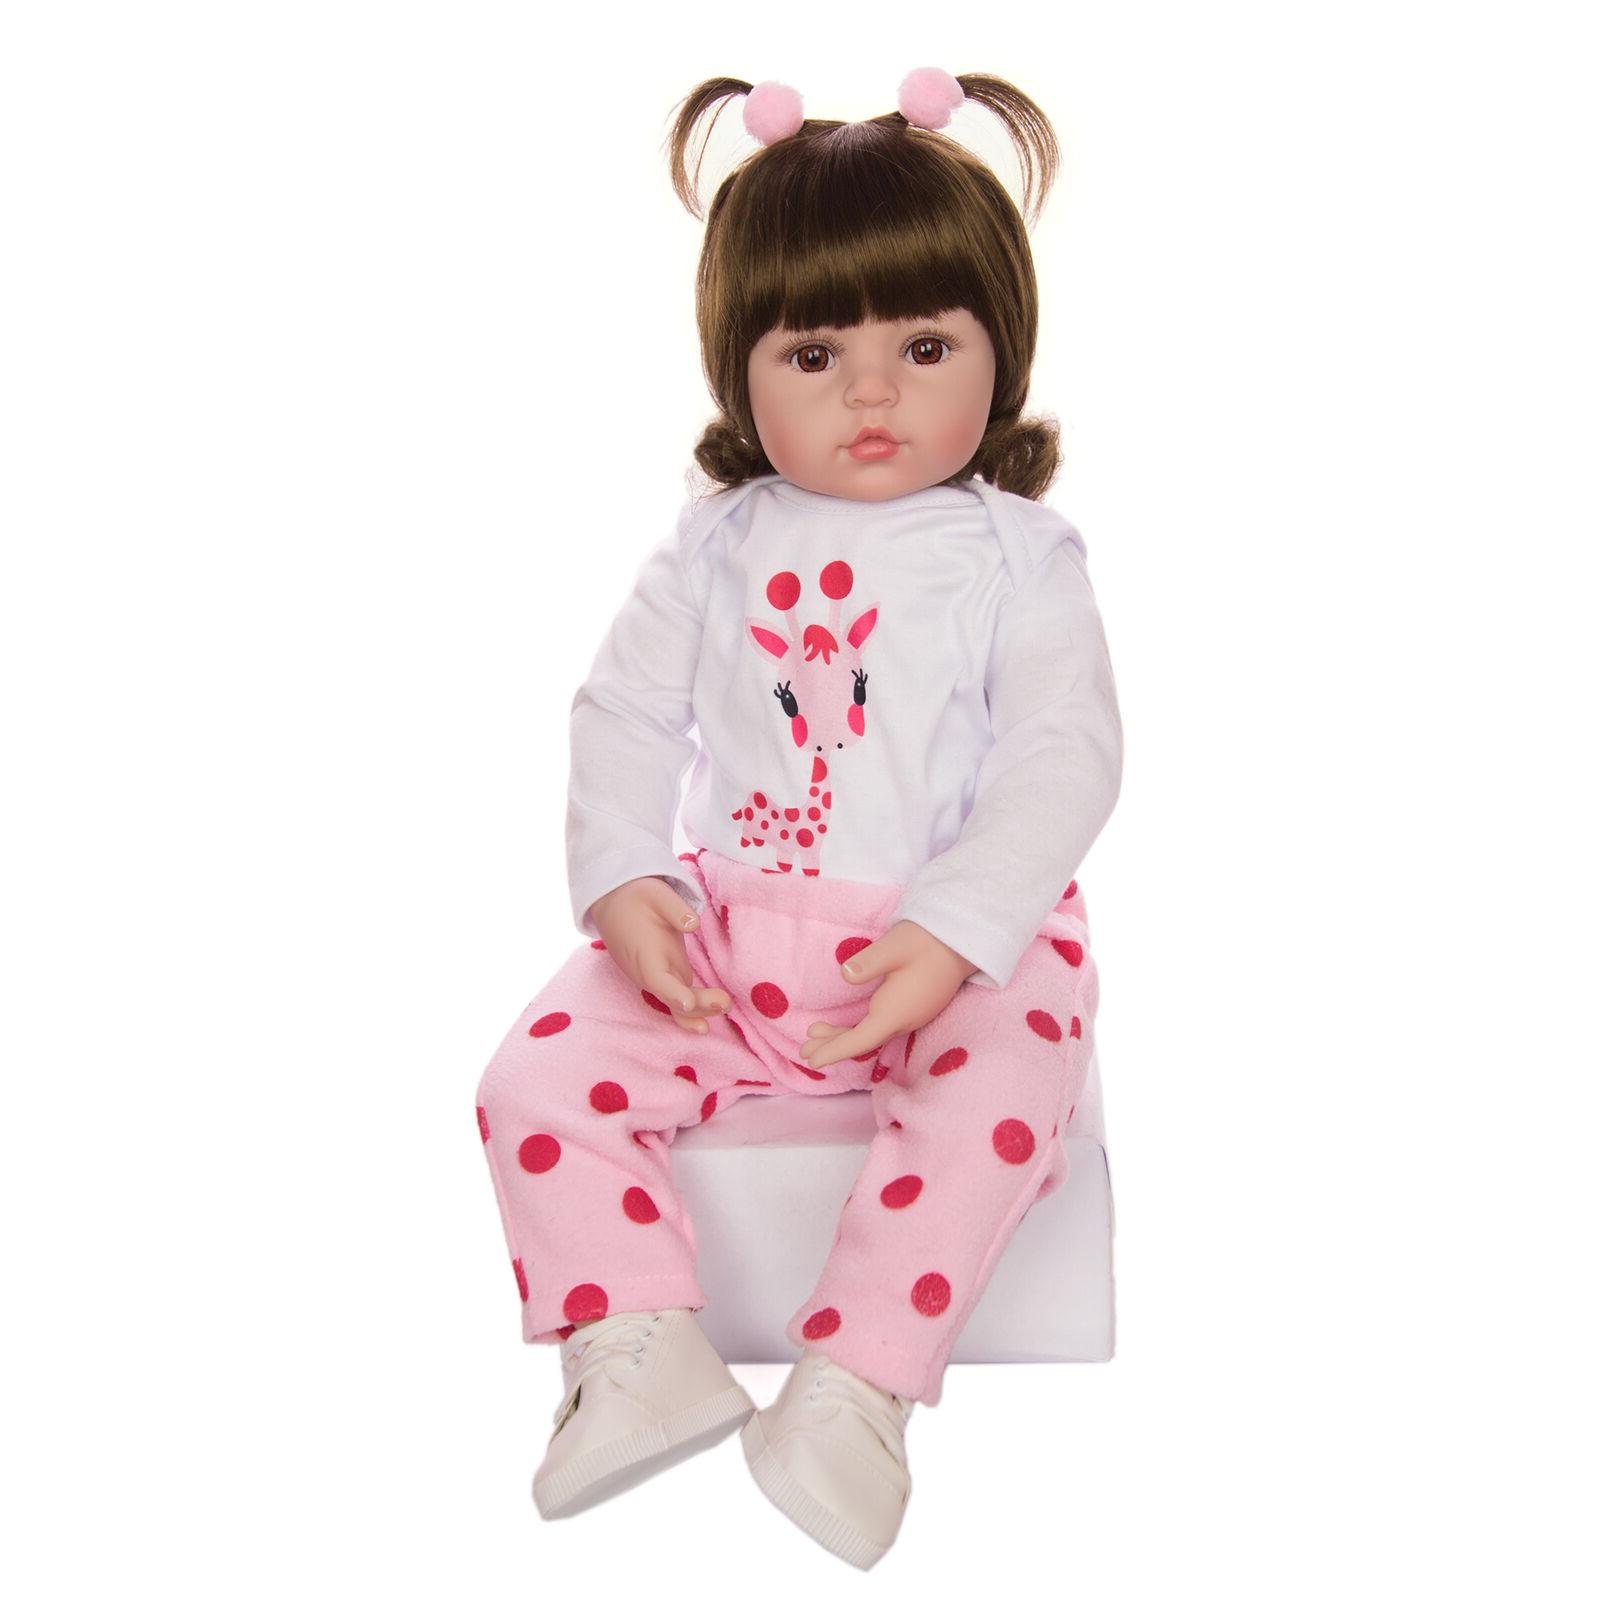 Reborn Doll Cloth Body Baby With Toddler